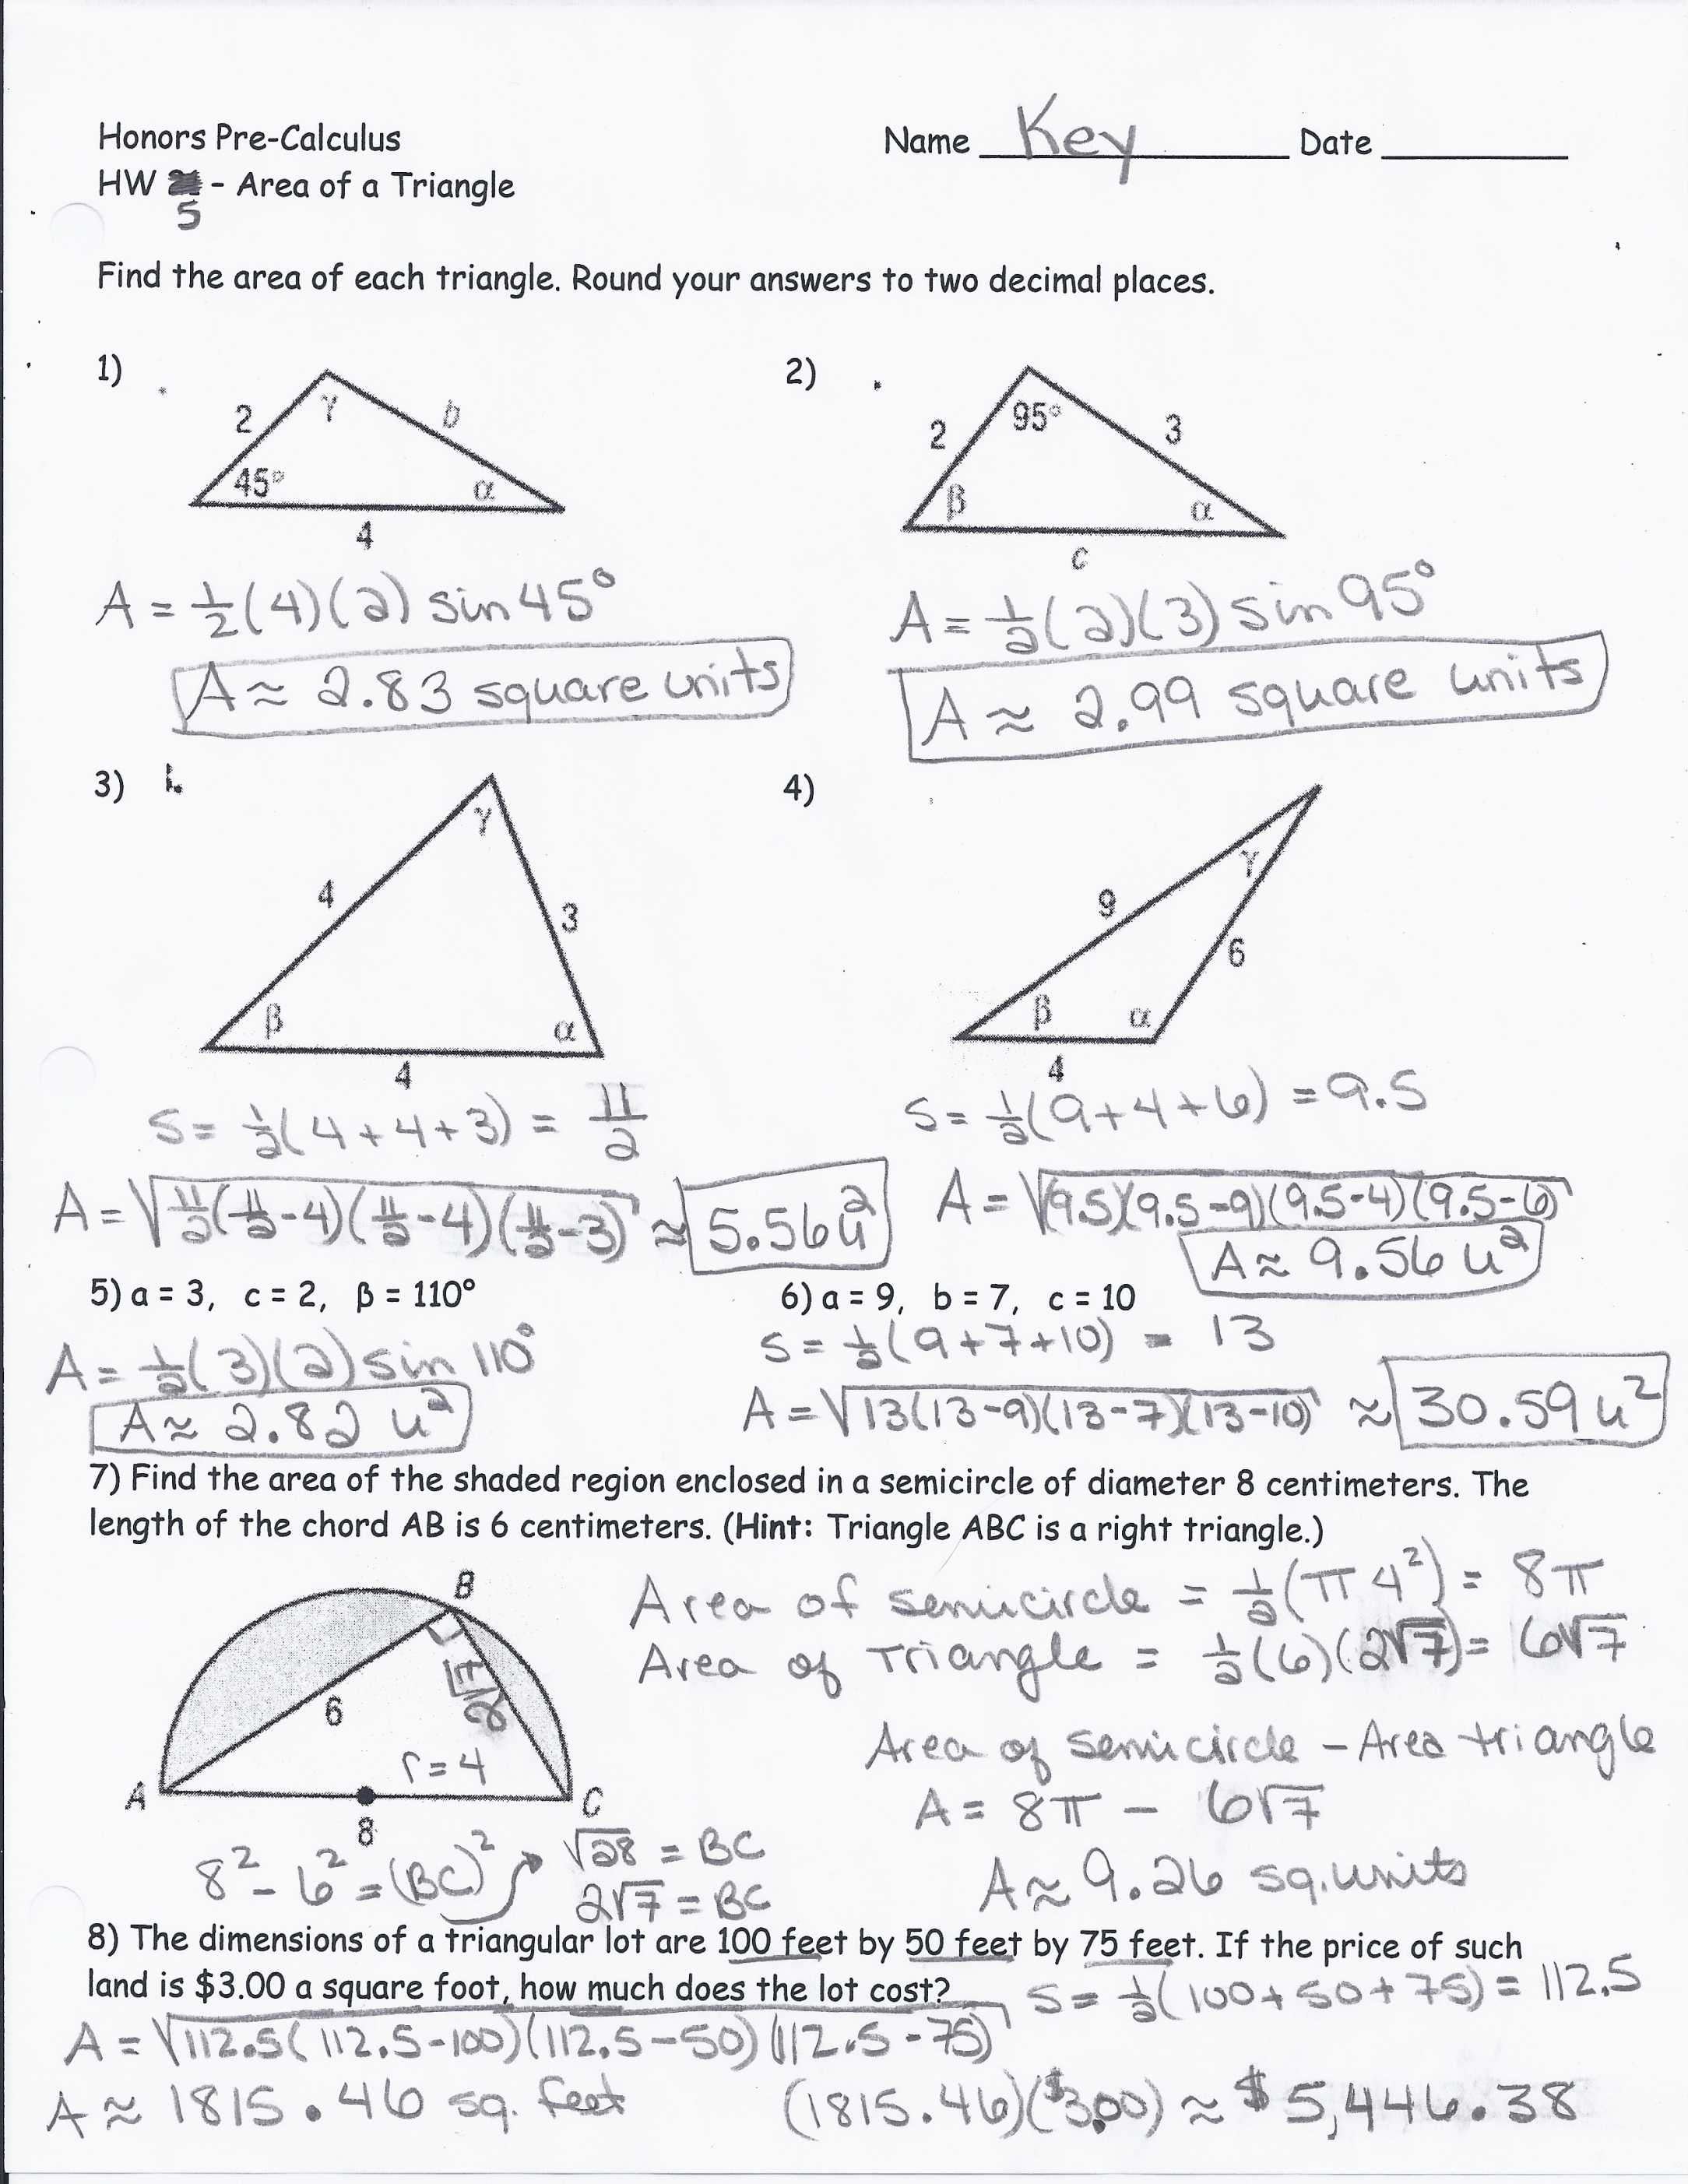 Trigonometry Finding Angles Worksheet Answers as Well as Worksheet Right Triangle Trigonometry Worksheet Answers Design